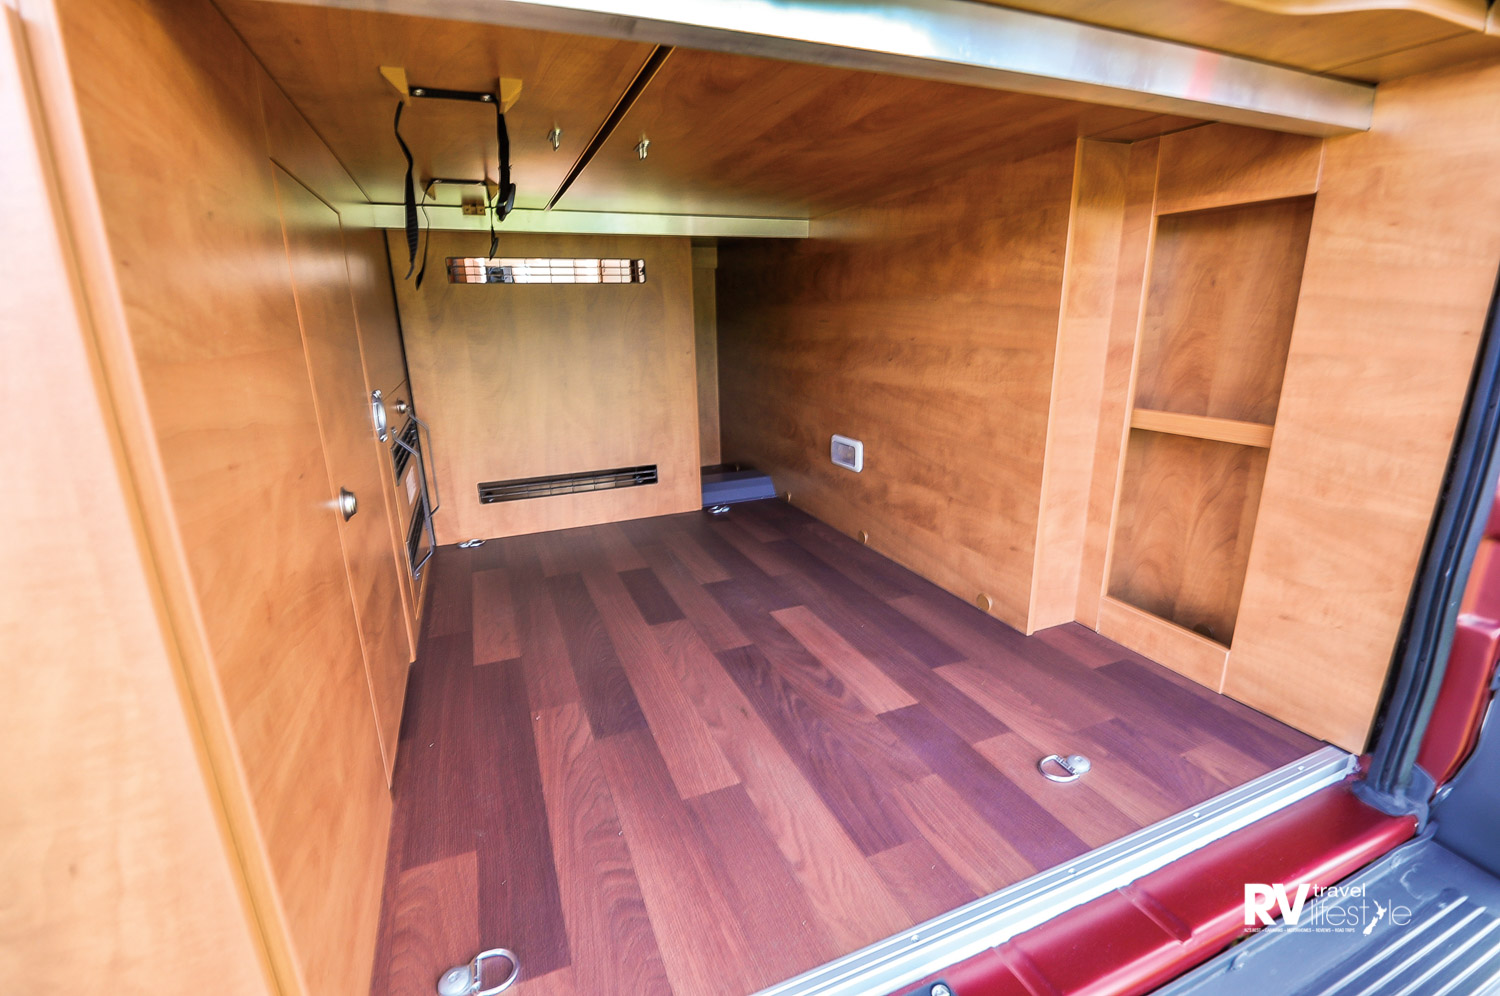 Storage under the bed is impressive and easily accessible through the rear doors